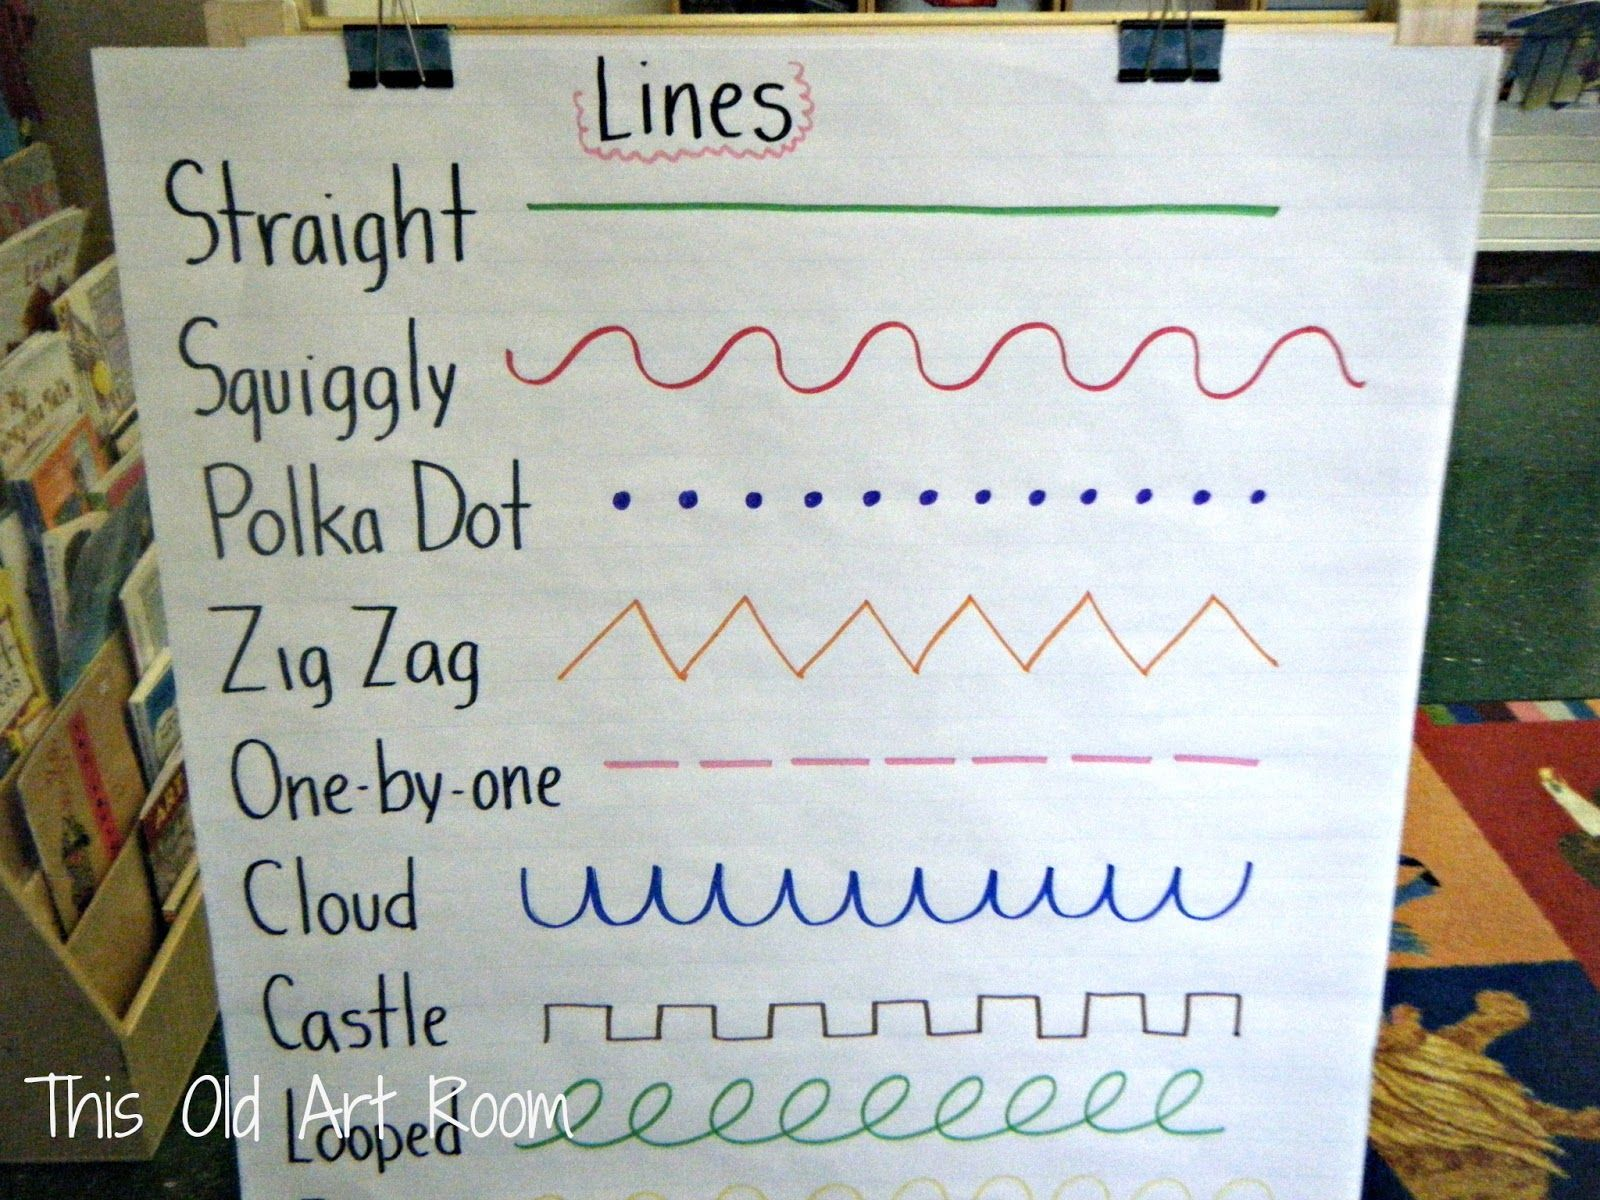 Used This Idea With The Kg1 S For Our Line Murals Made